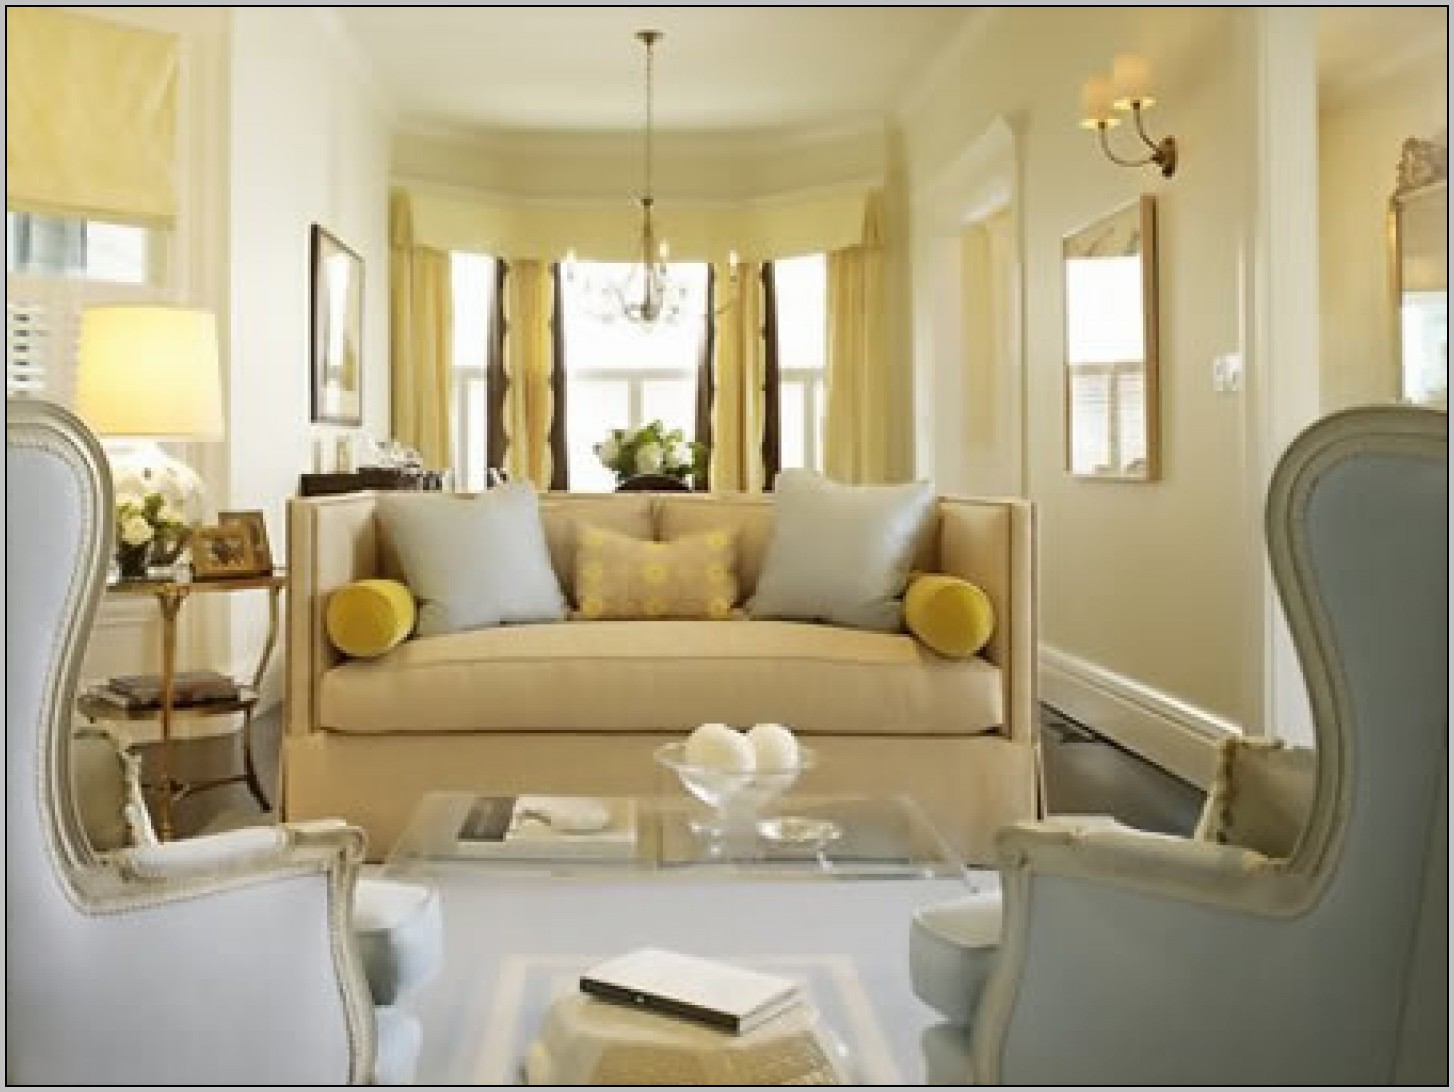 Living room paint color ideas 2014 painting home for Living room paint ideas 2015